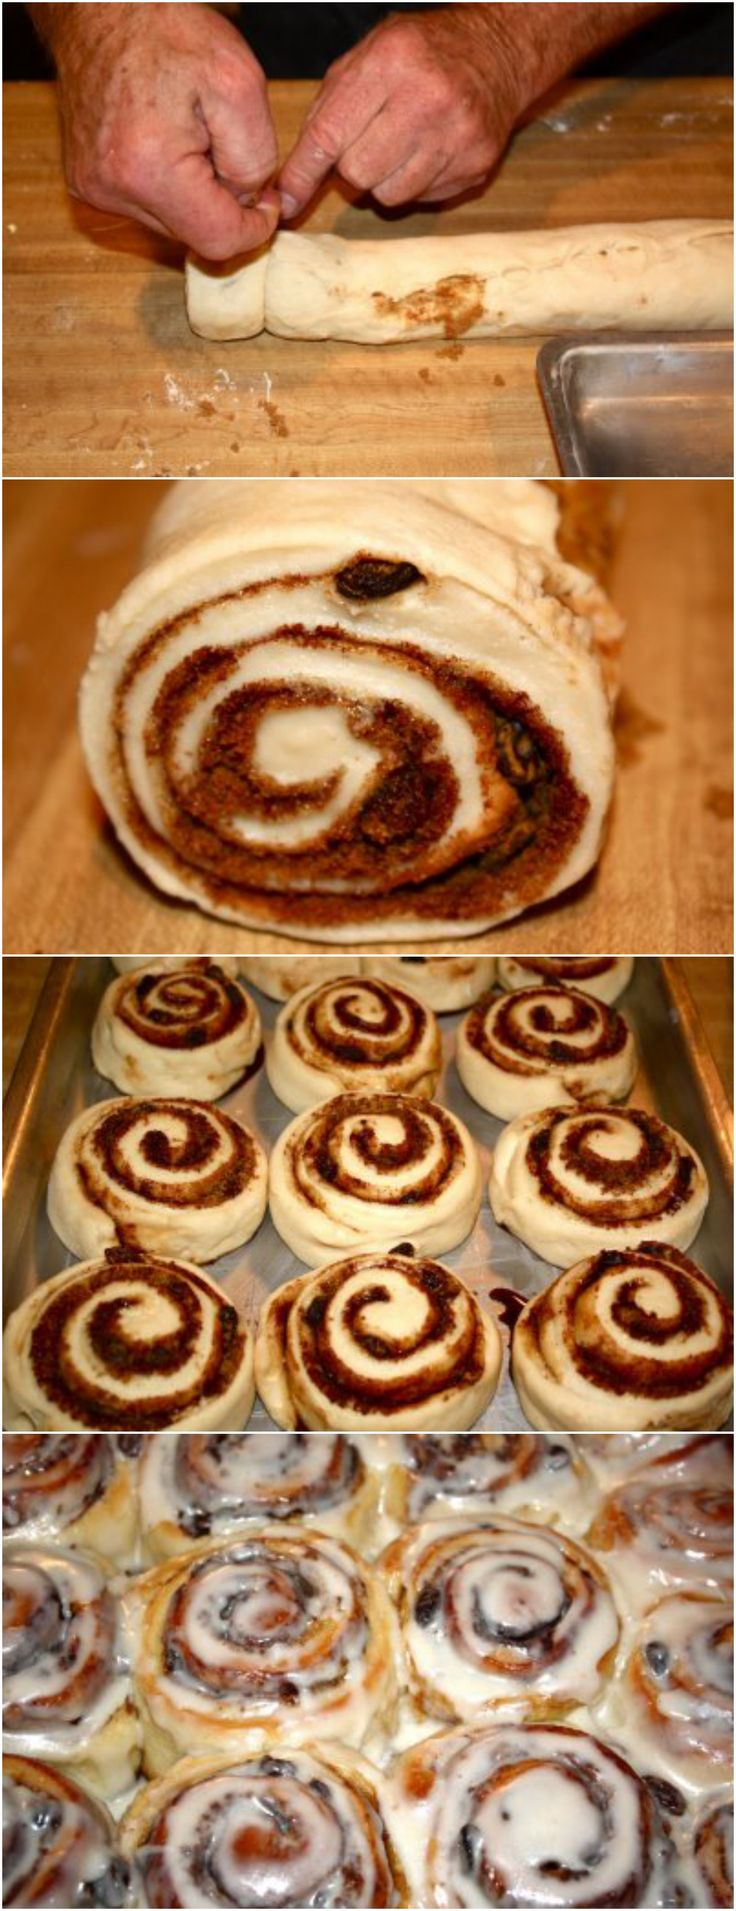 Cinnamon Roll Recipe... Another pinner: These are the BEST cinnamon rolls! Everyone always asks for my dad's famous recipe!